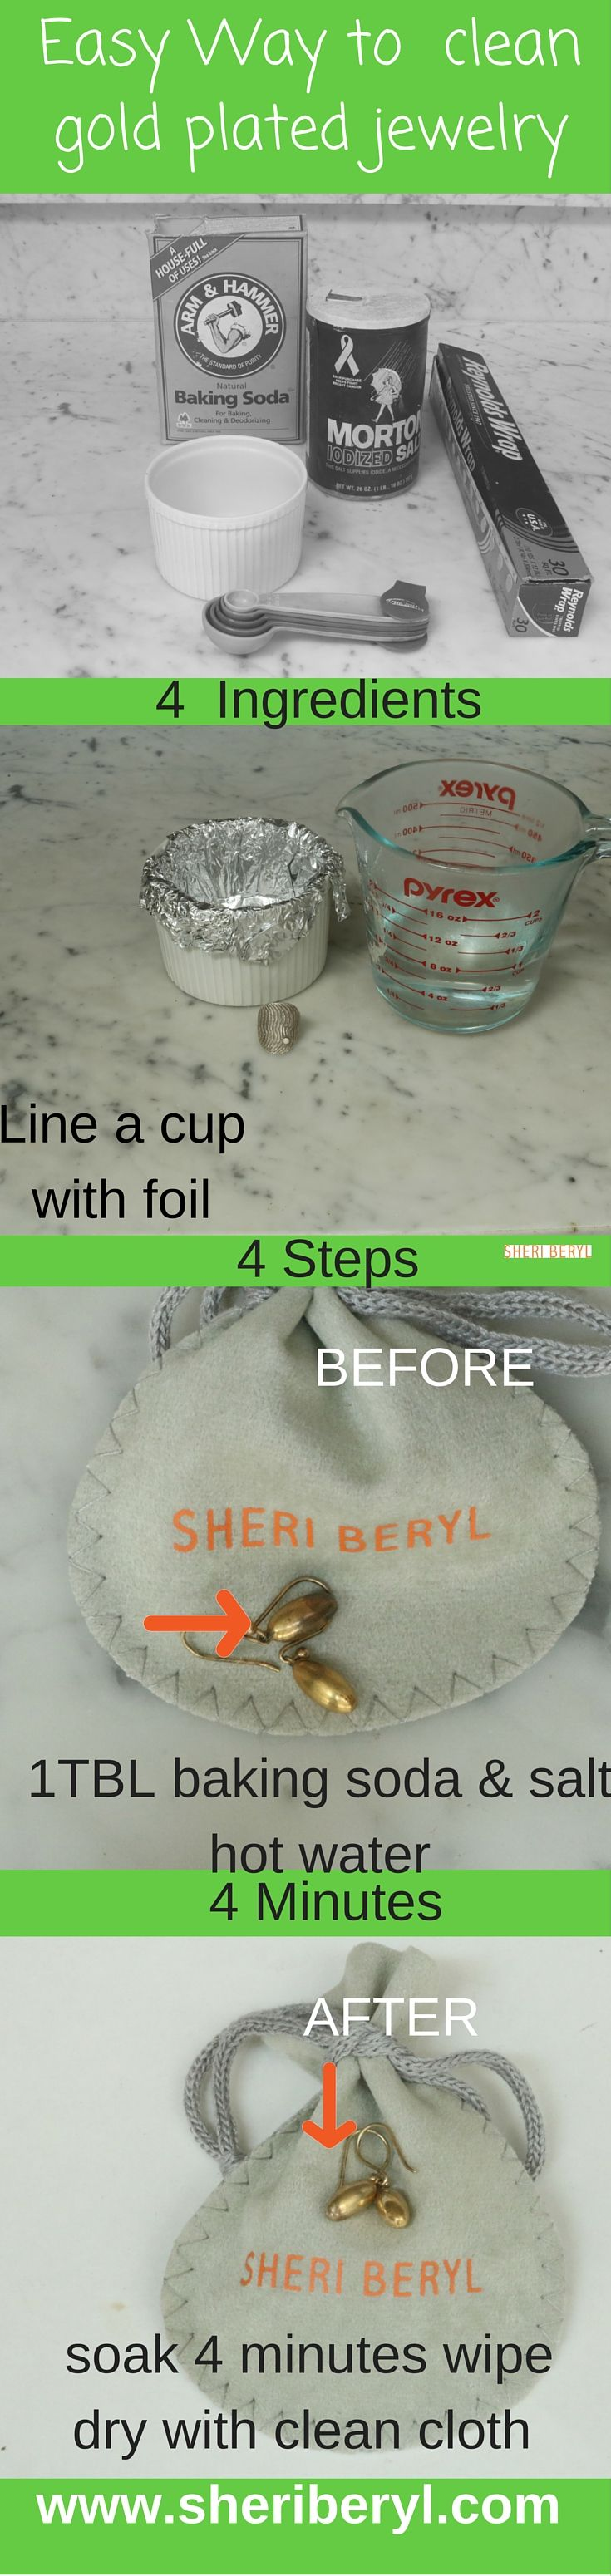 How to clean gold plated and Vermeil jewelry in 4 easy steps, 4 ingredients, 4 minutes  Special care needs to be take with plated pieces to maintain the finish and keep them looking like new.